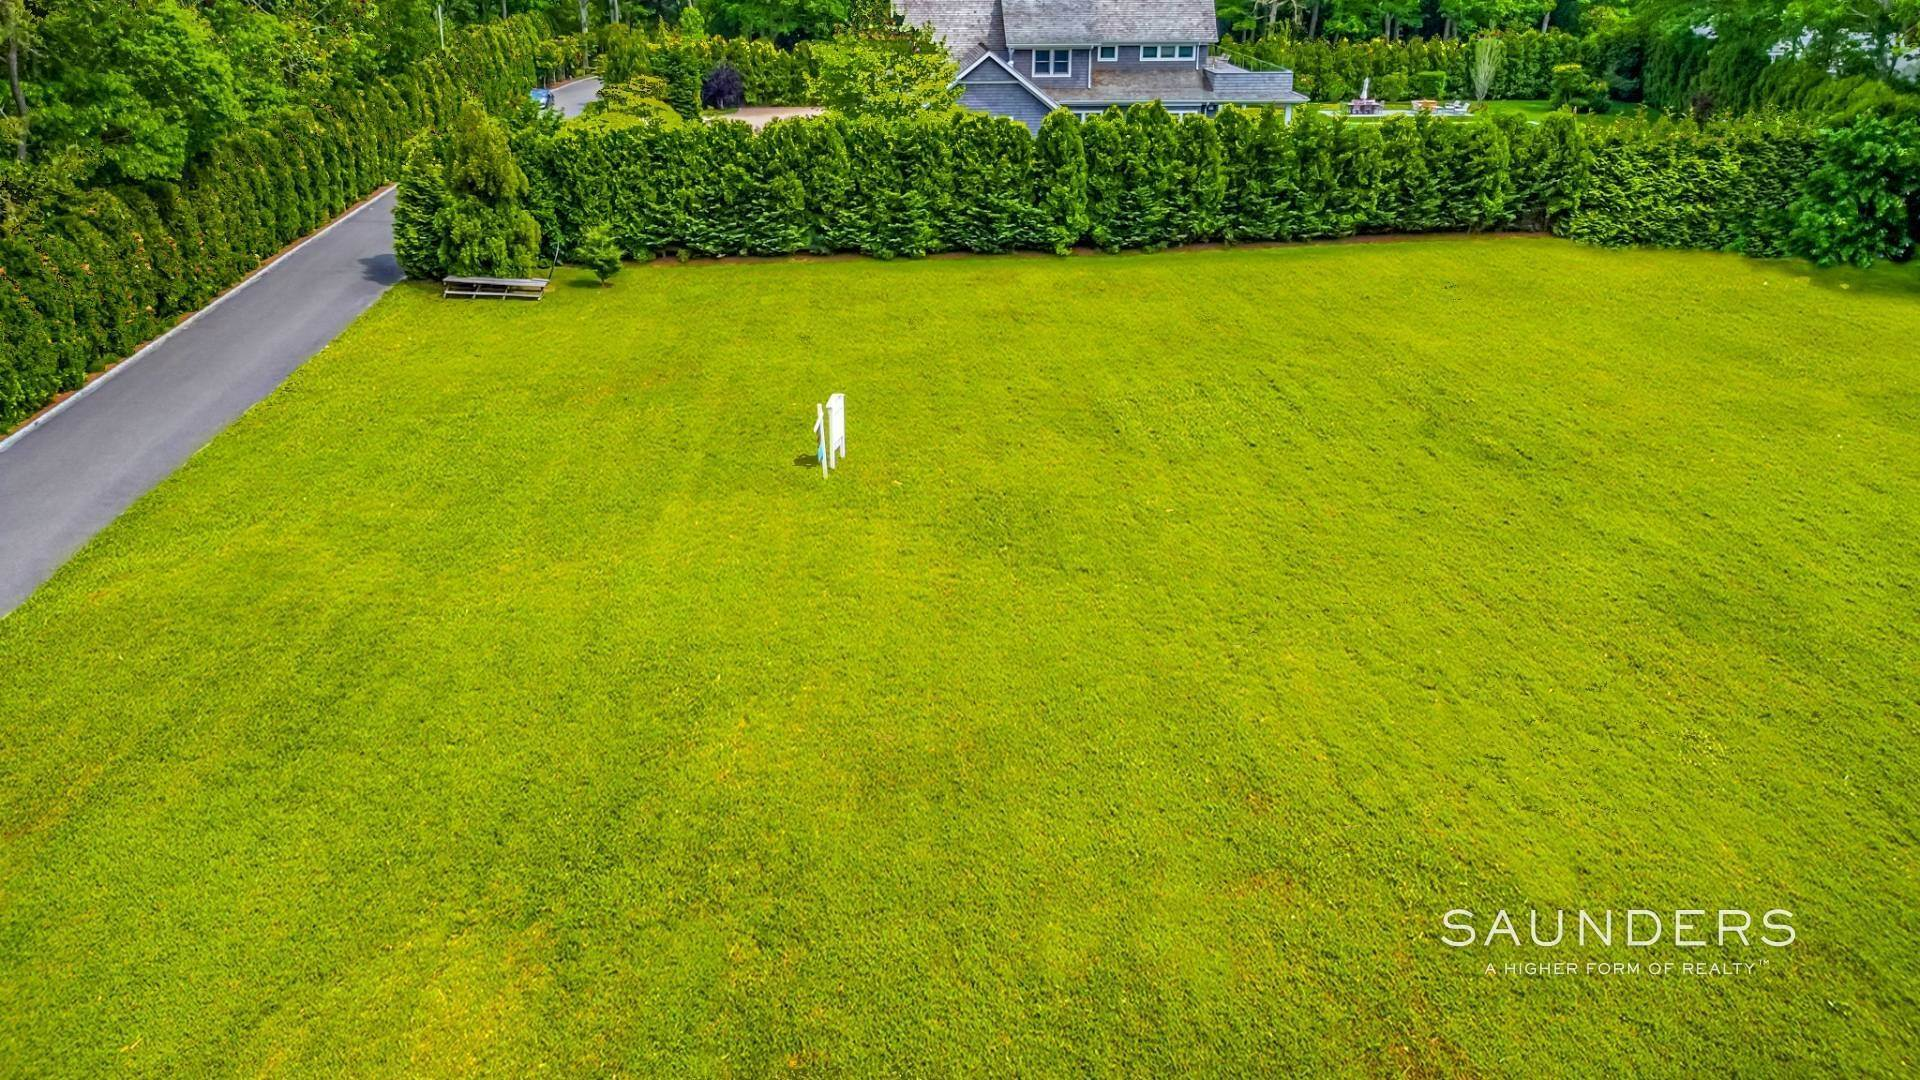 2. Land for Sale at Vacant Land Opportunity Center Of The Village Of Quogue 129 Montauk Highway, Quogue Village, Southampton Town, NY 11959